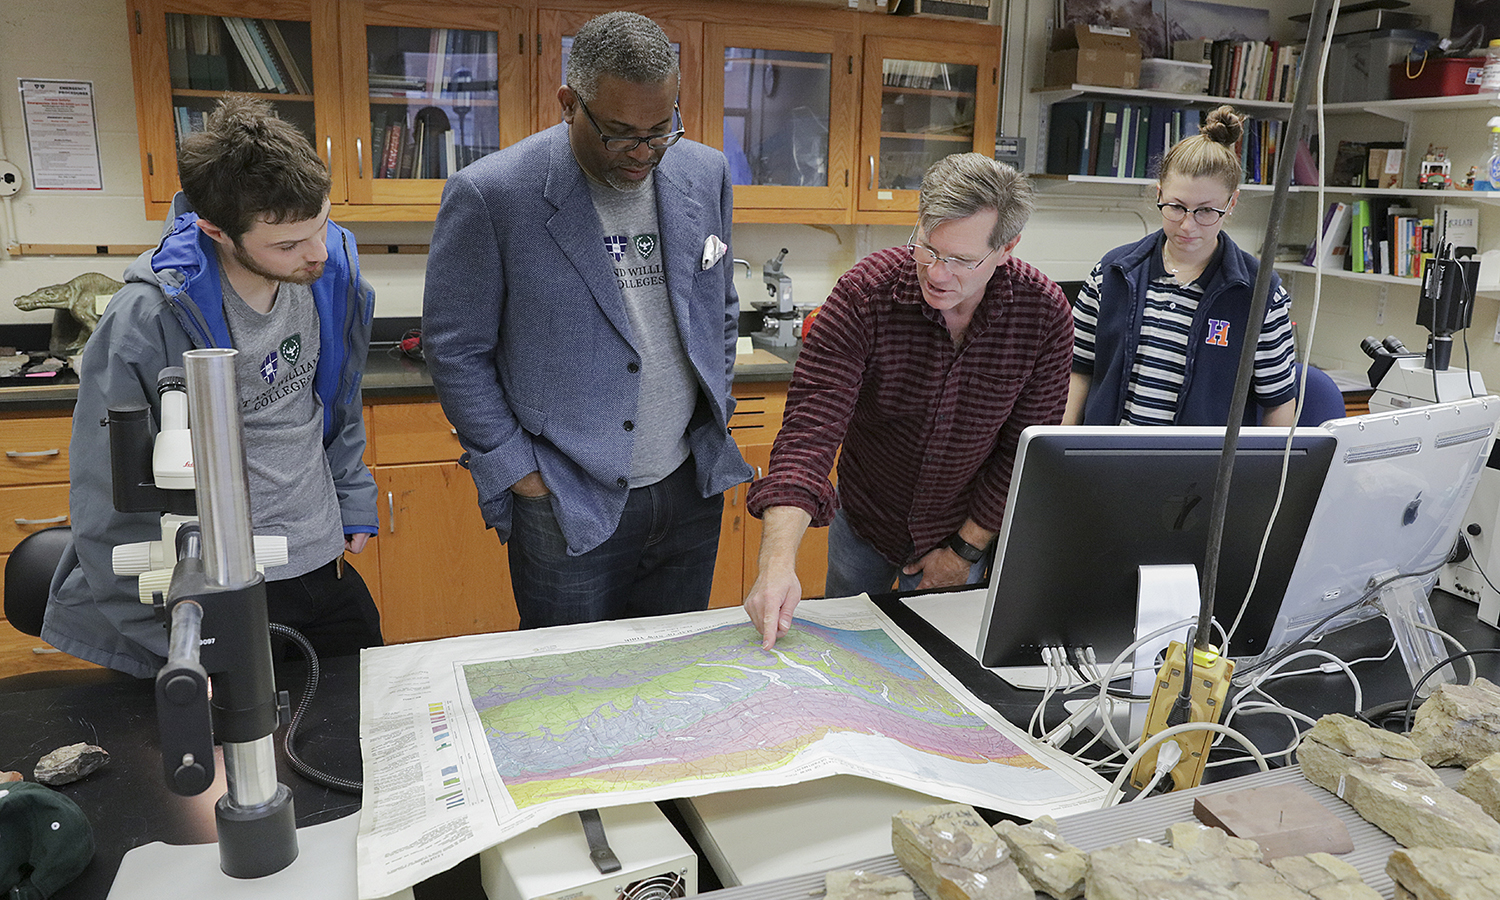 HWS President for a Day winnter Joe Estrin '20, President Greogry J. Vincent '83, Associate Professor of Geoscience David Kendrick and Racheal Barry 'X examine fossils in Rosenberg Hall.